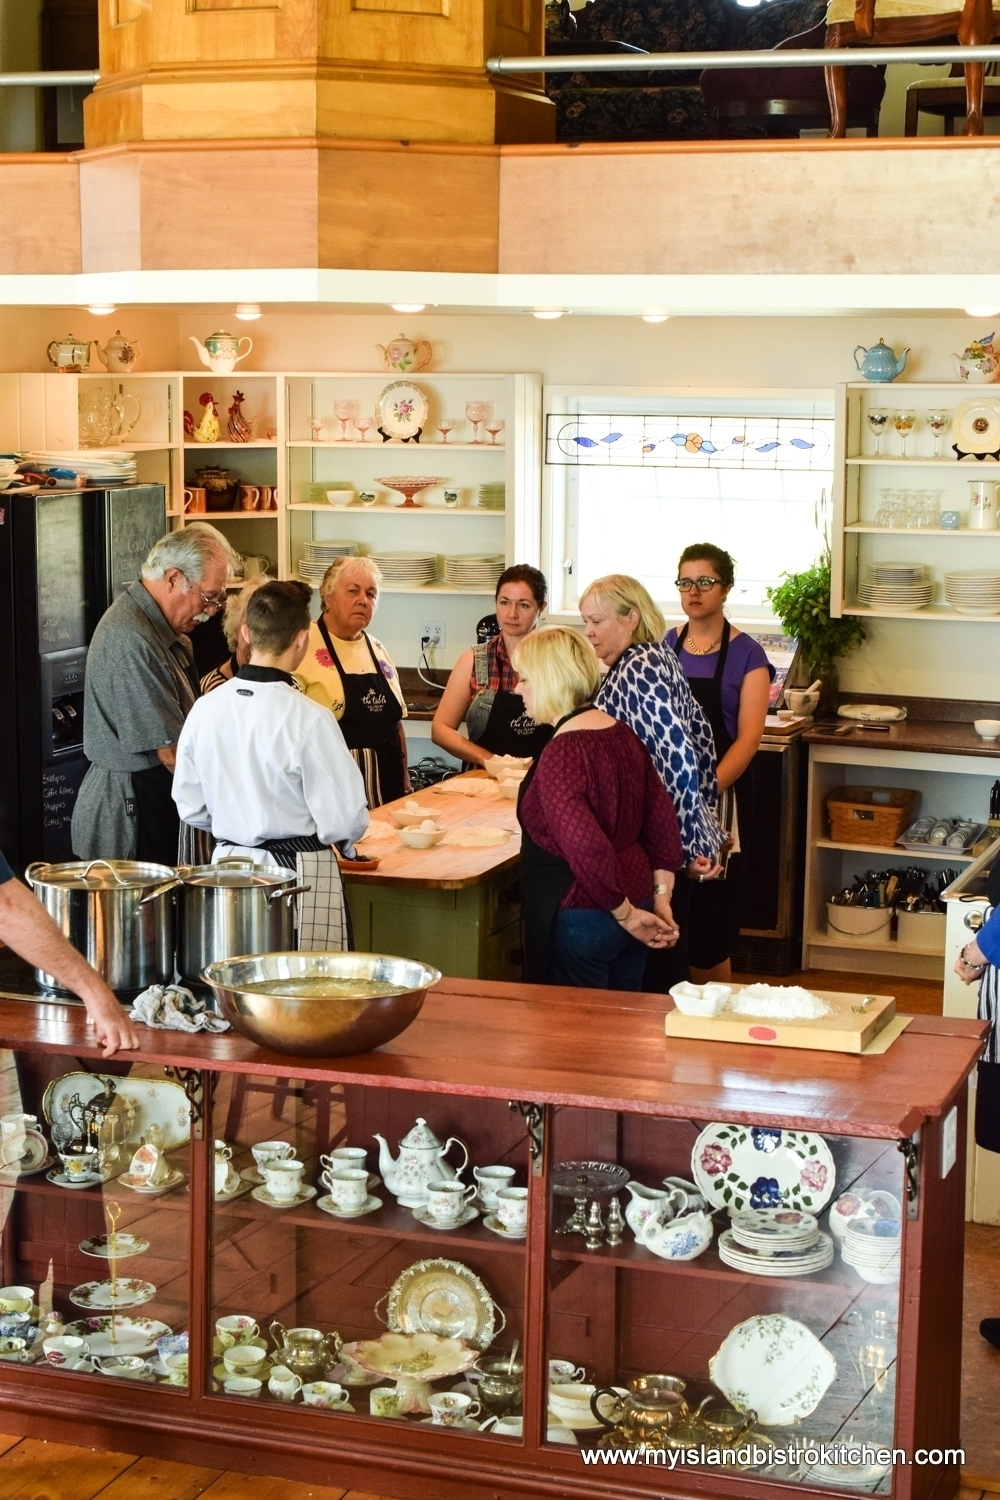 The Kitchen at The Table Culinary Studio, New London, PEI